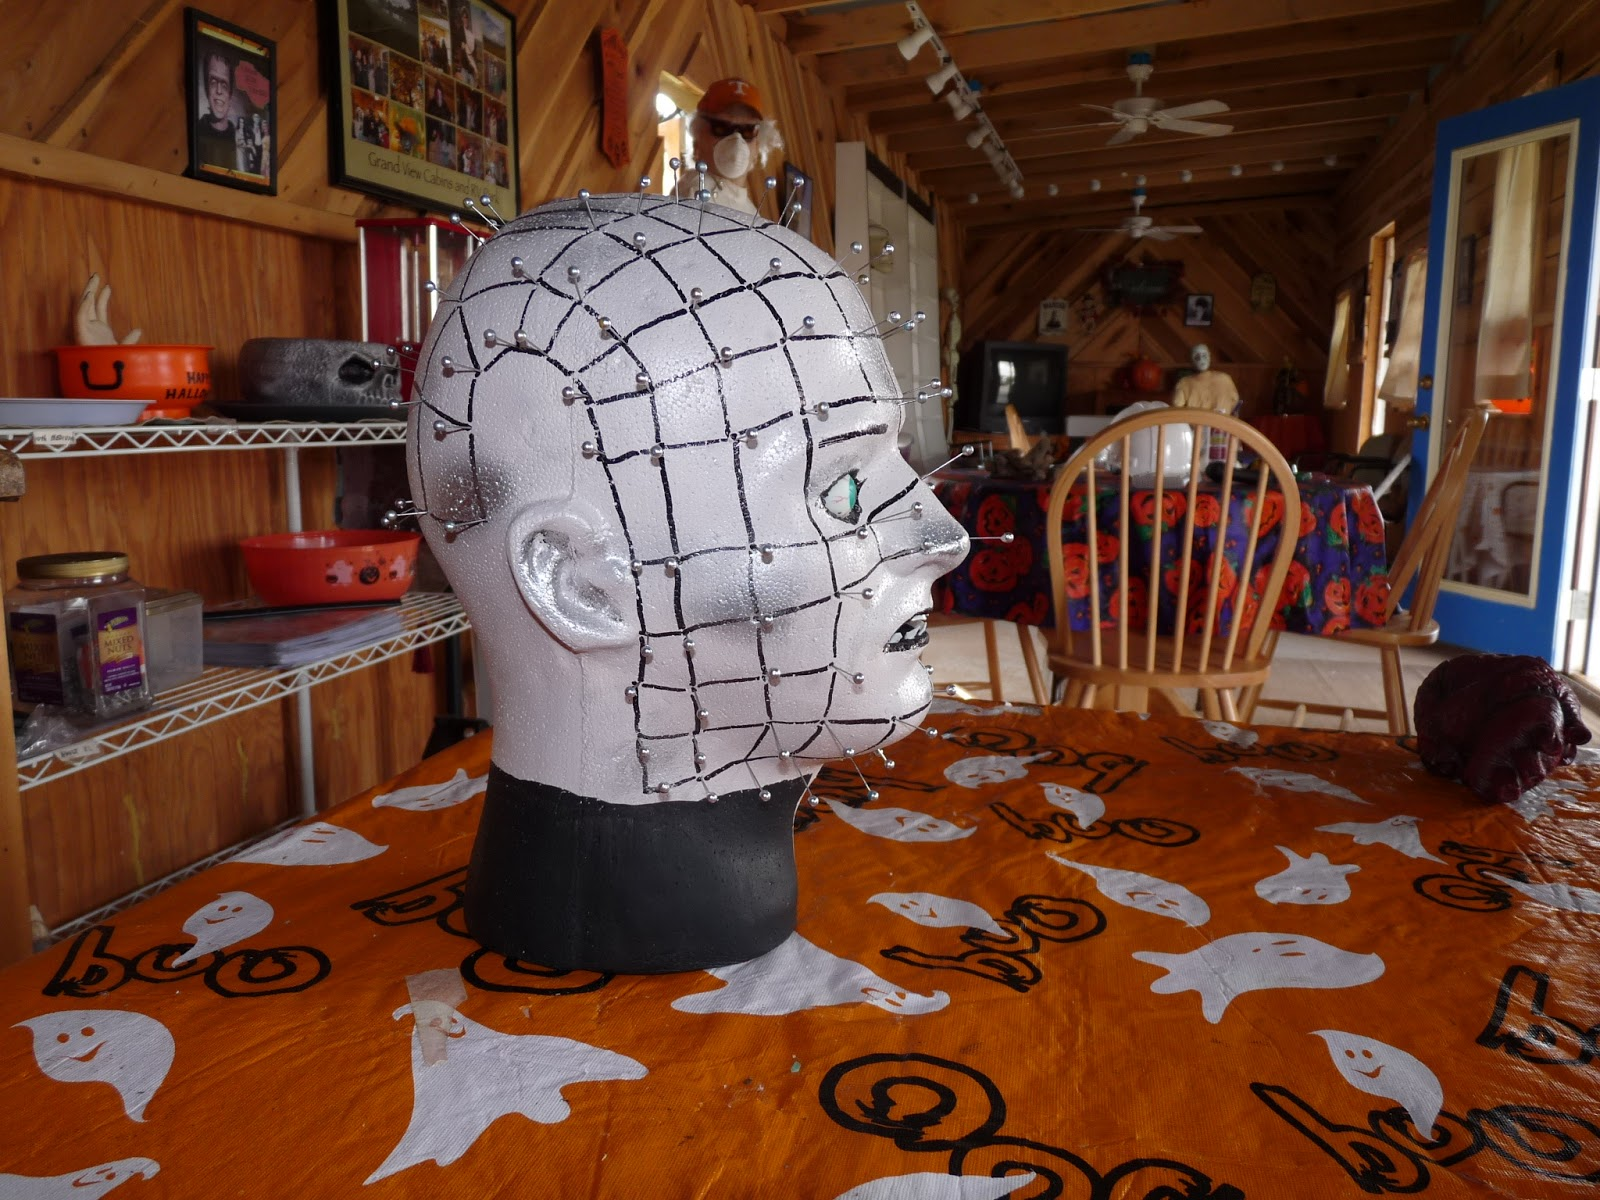 House Decoration Ideas 2016 For Halloween Party & Lighting Décor ...